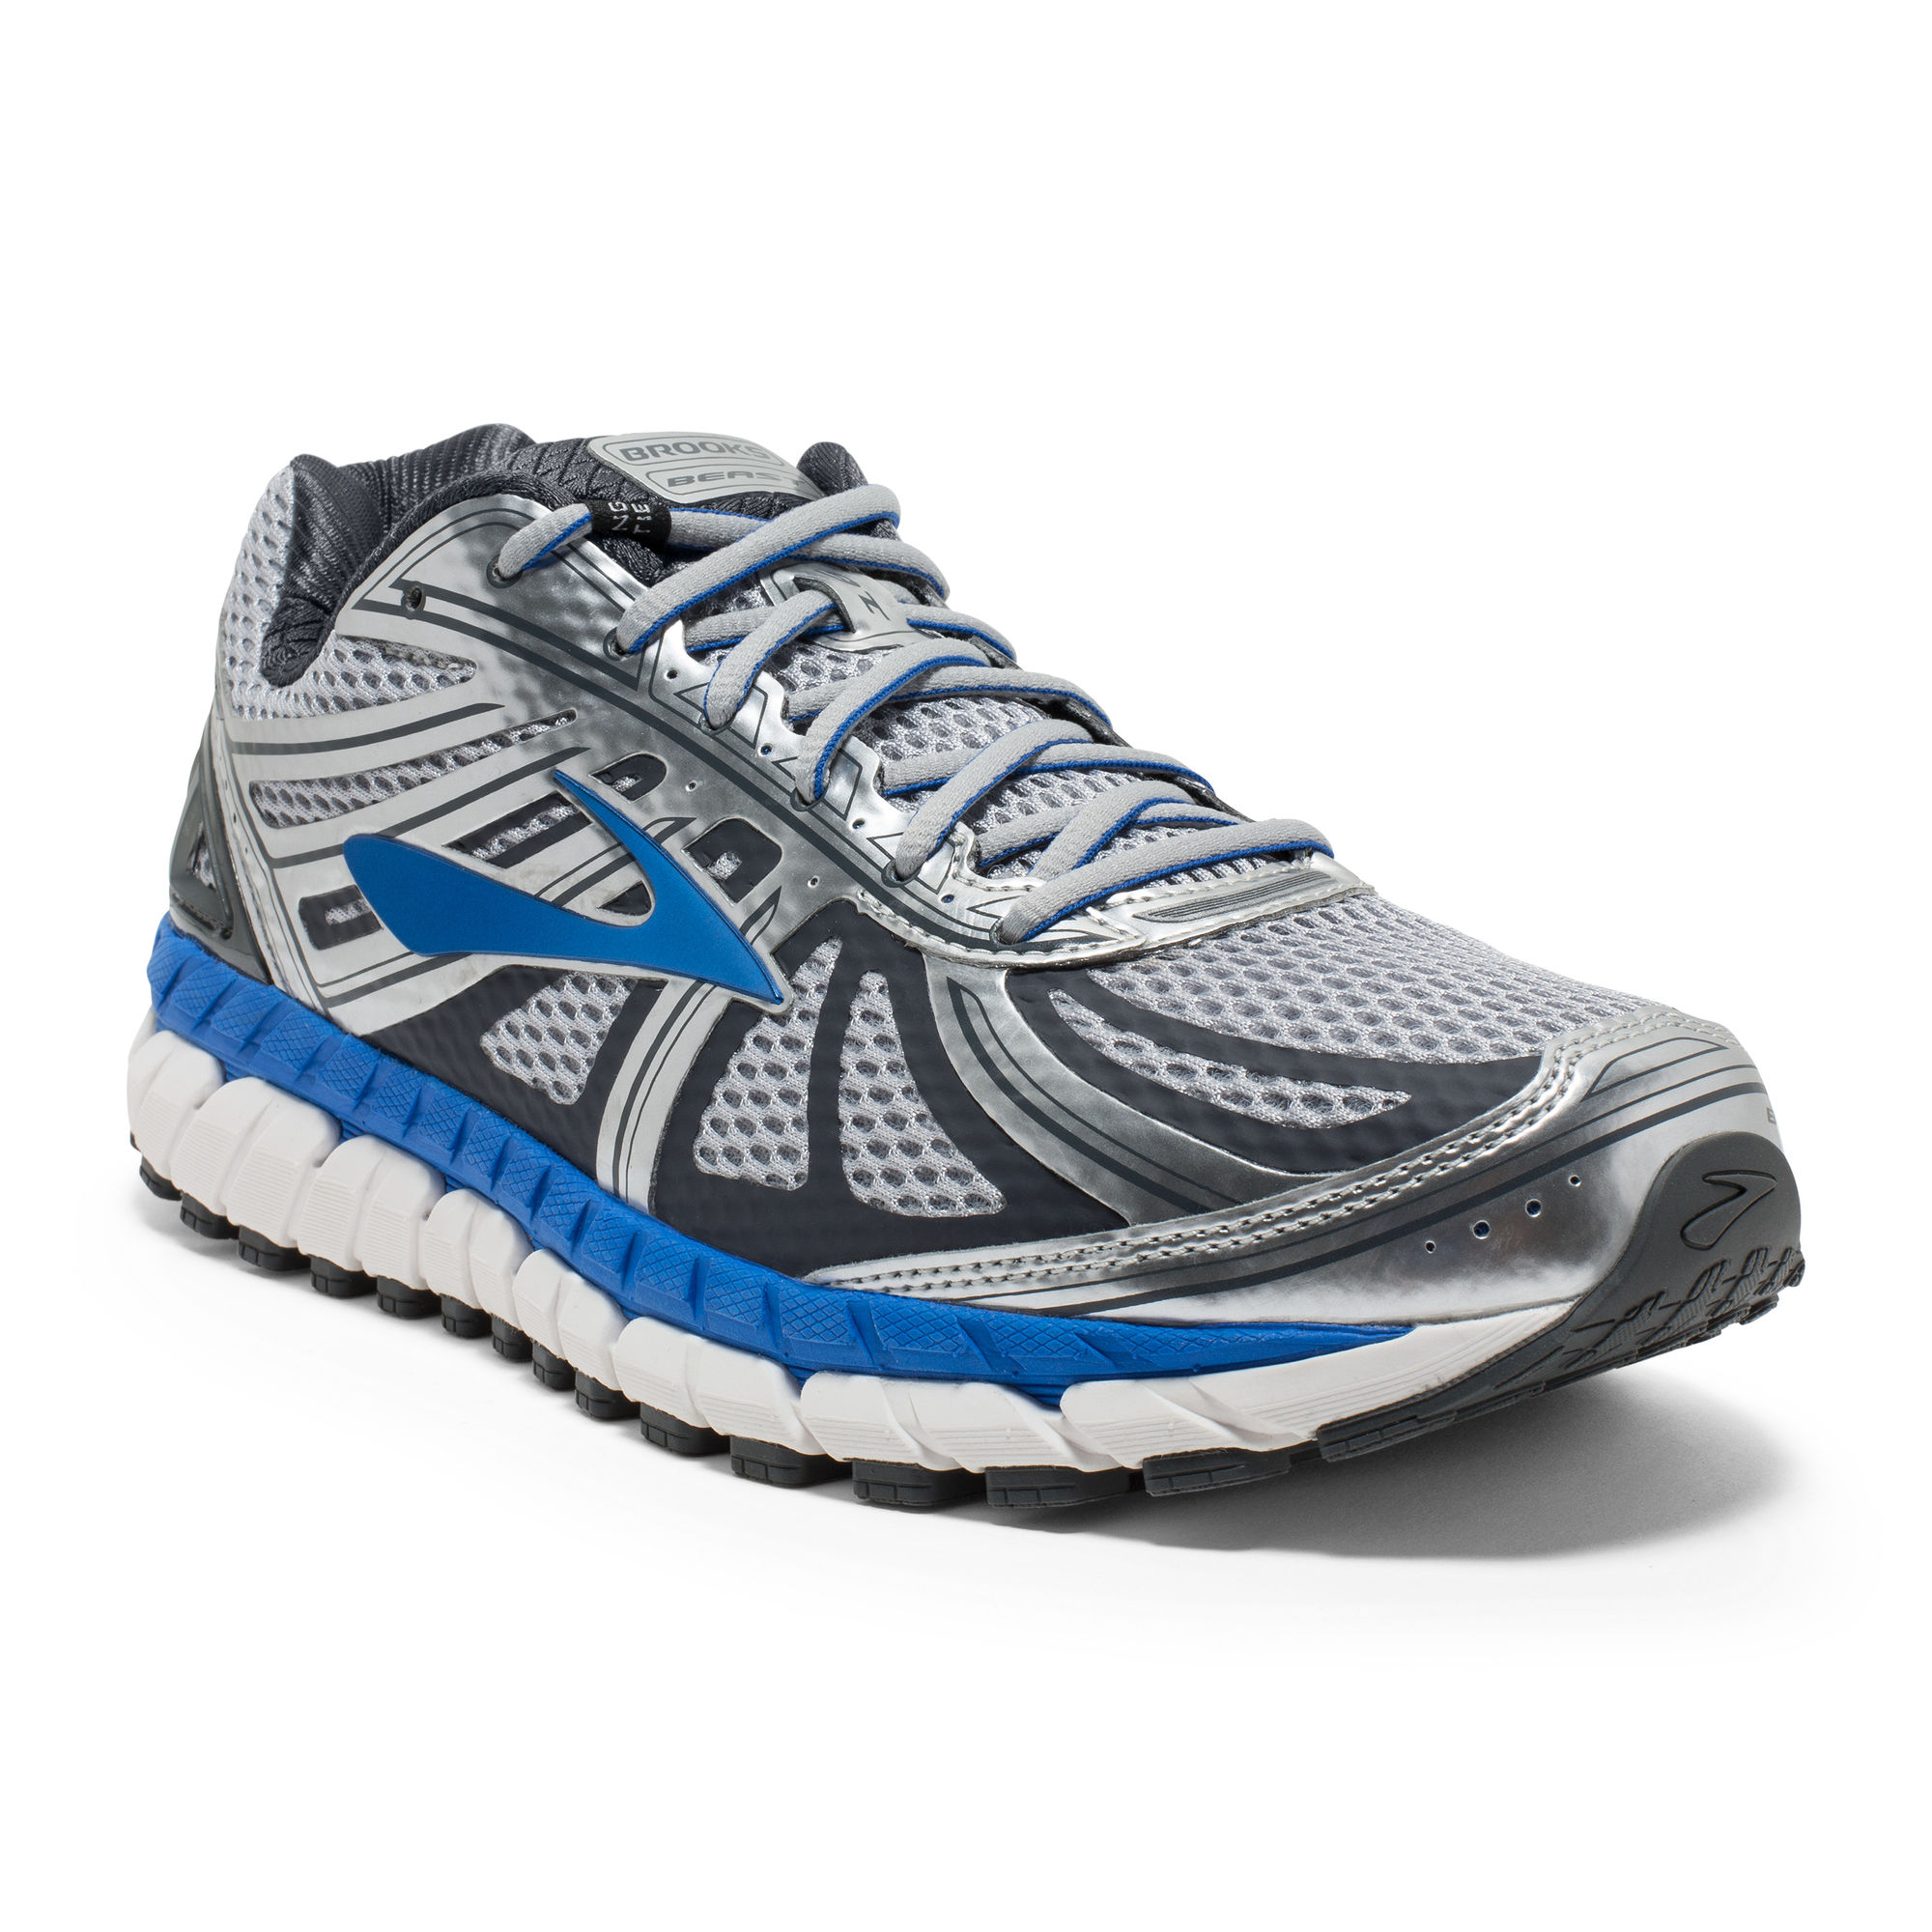 Brooks Beast 16 4E in Grau Blau